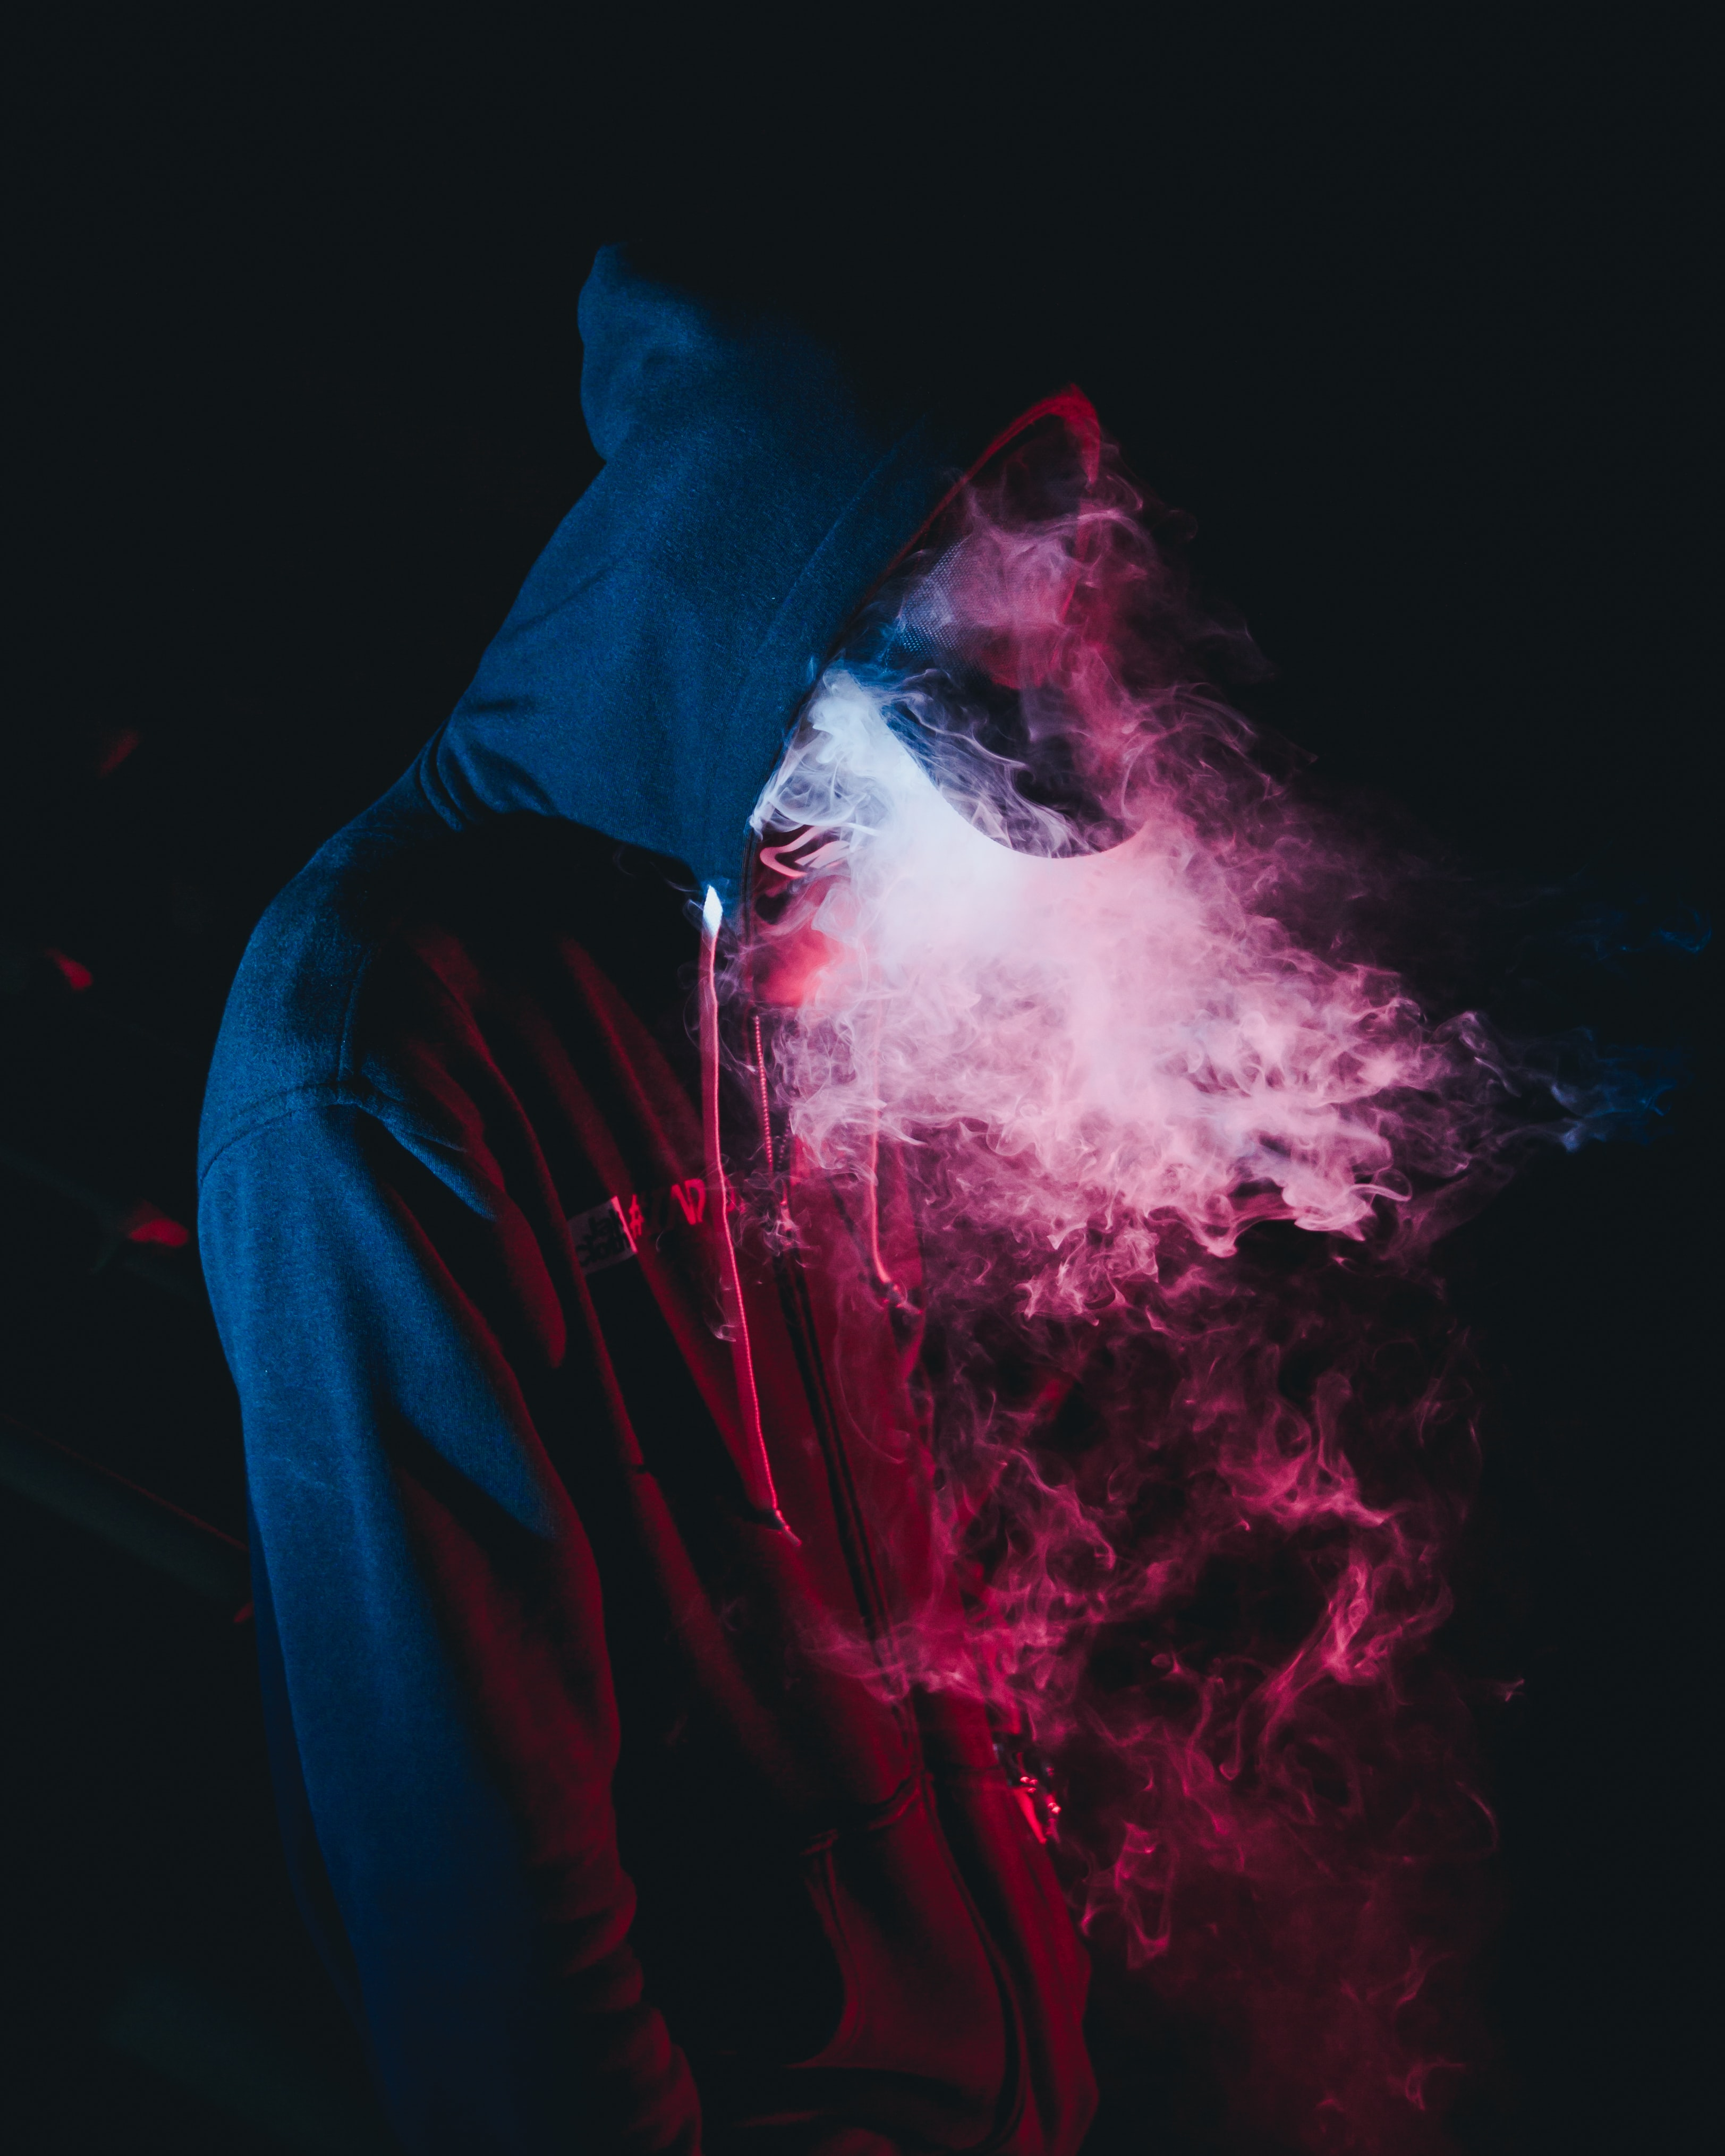 500 Vape Pictures Hd Download Free Images On Unsplash